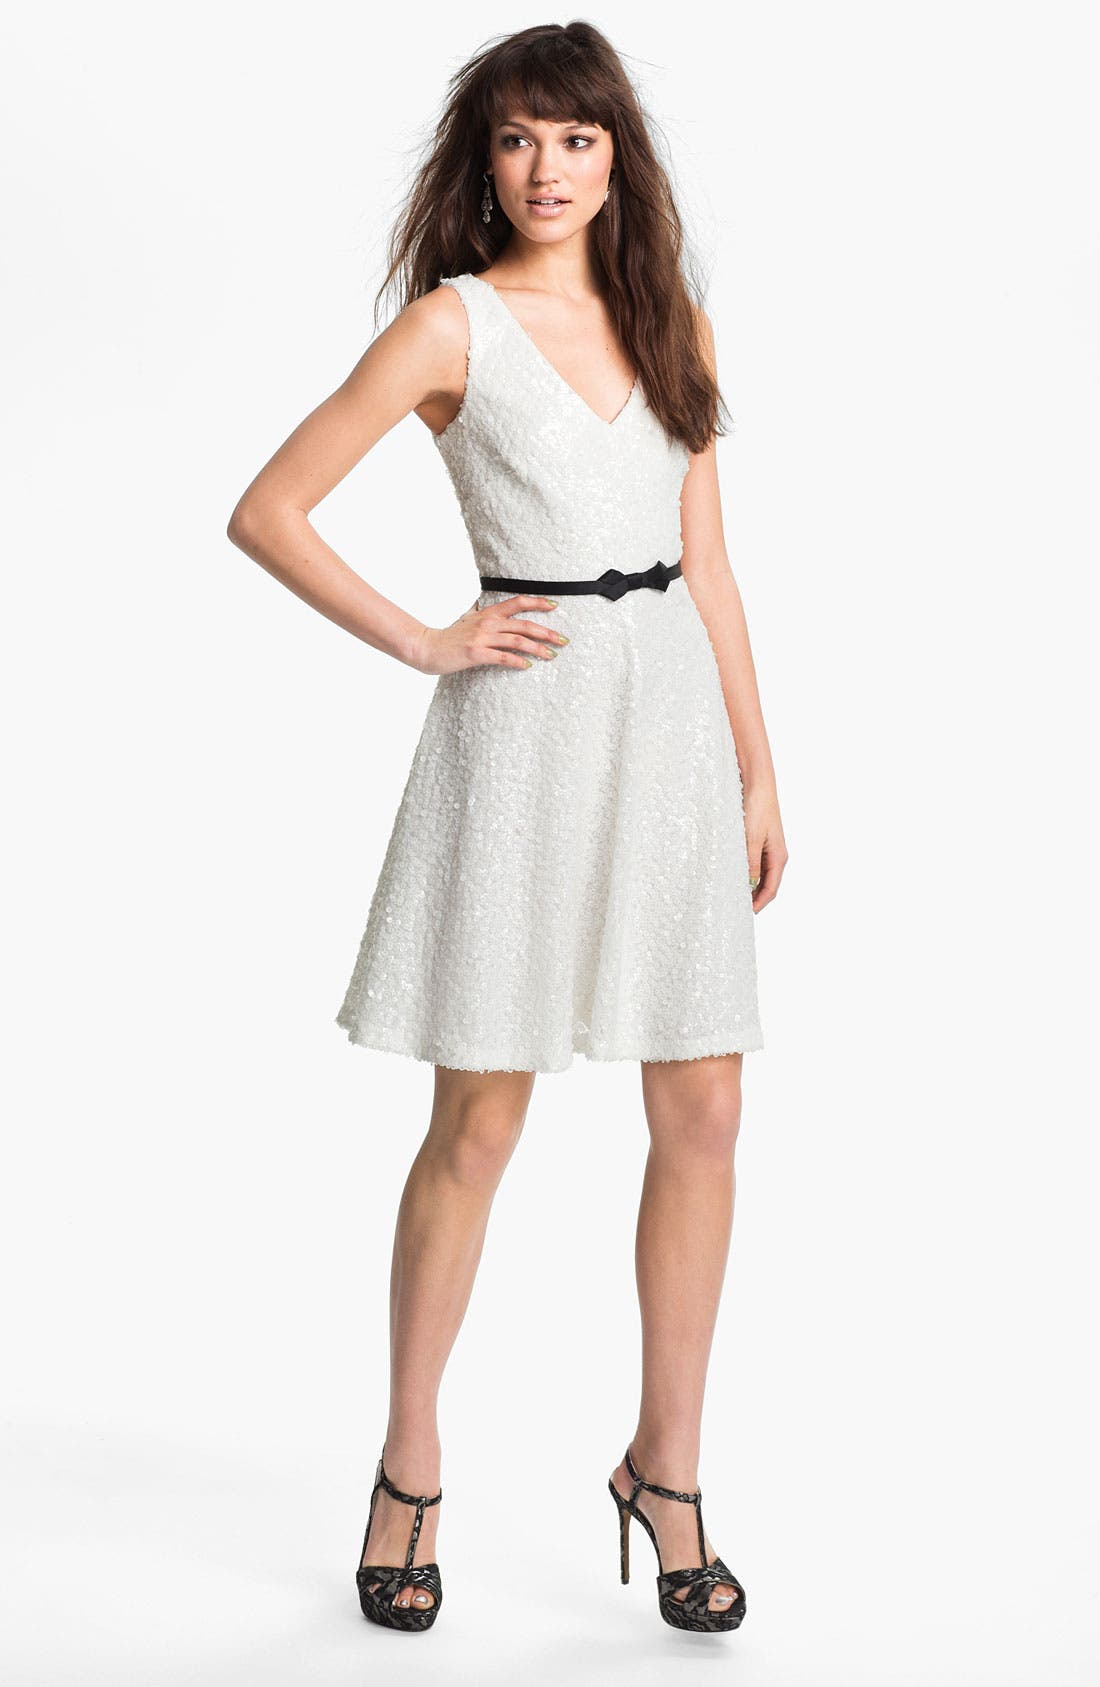 Alternate Image 1 Selected - Laundry by Shelli Segal Sequin Fit & Flare Dress